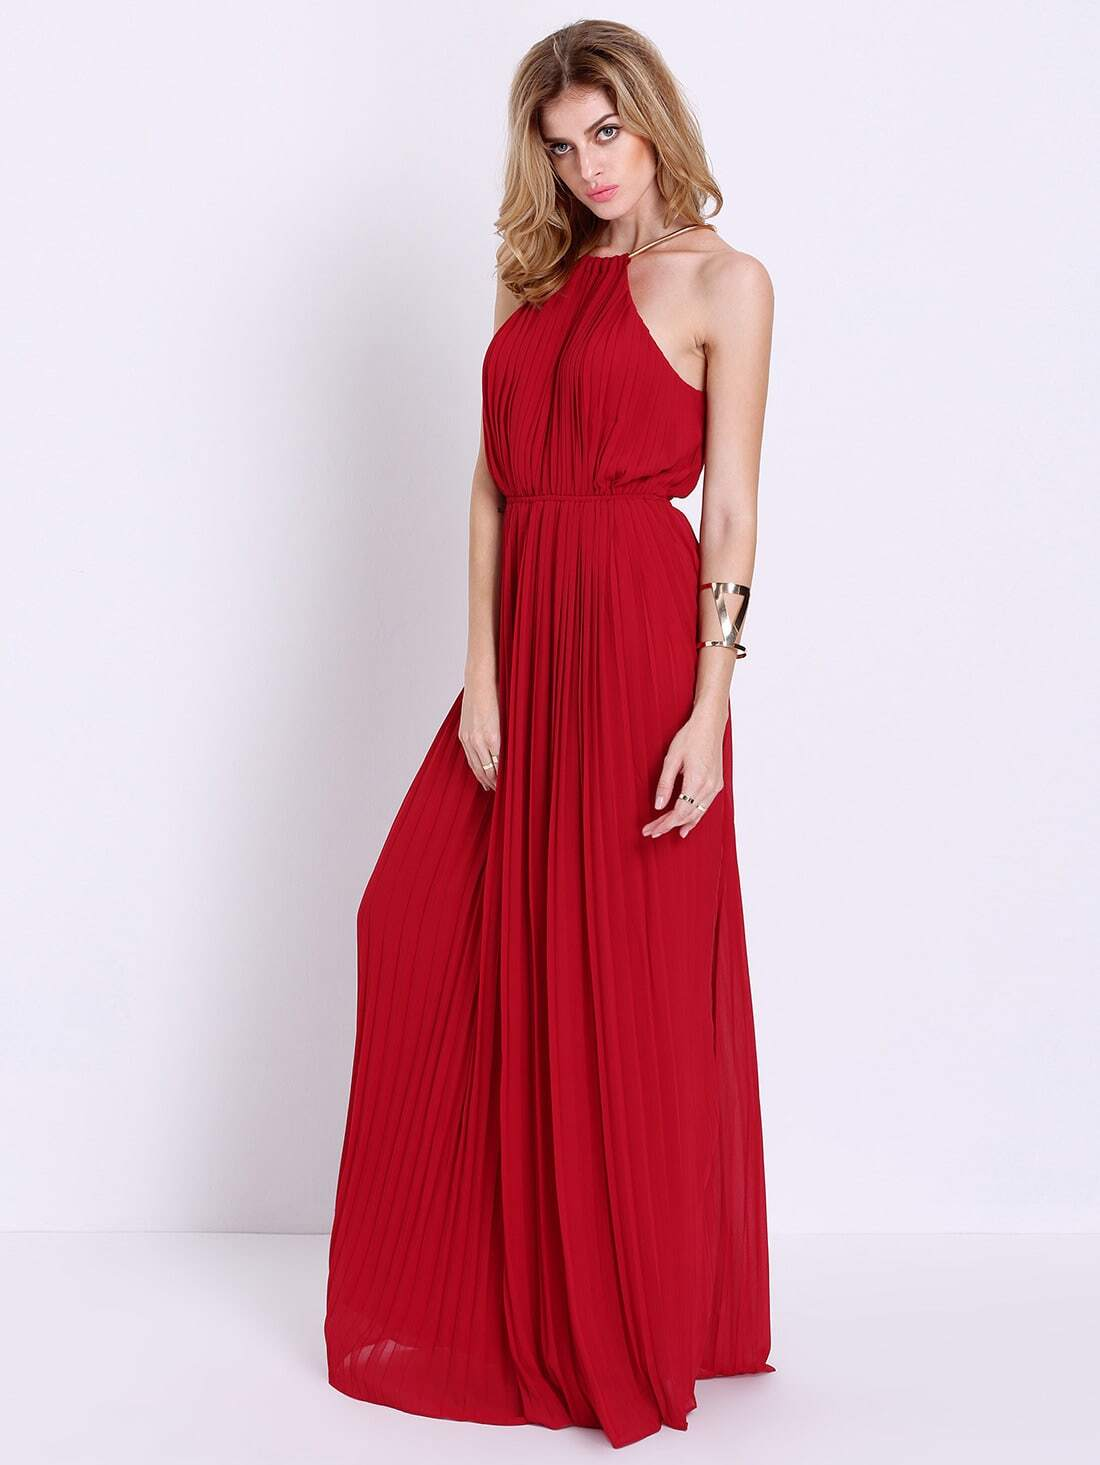 fede49066c9 Wine Red Evening Sleeveless Halterneck Pleated Infinity Maxi Dress pictures